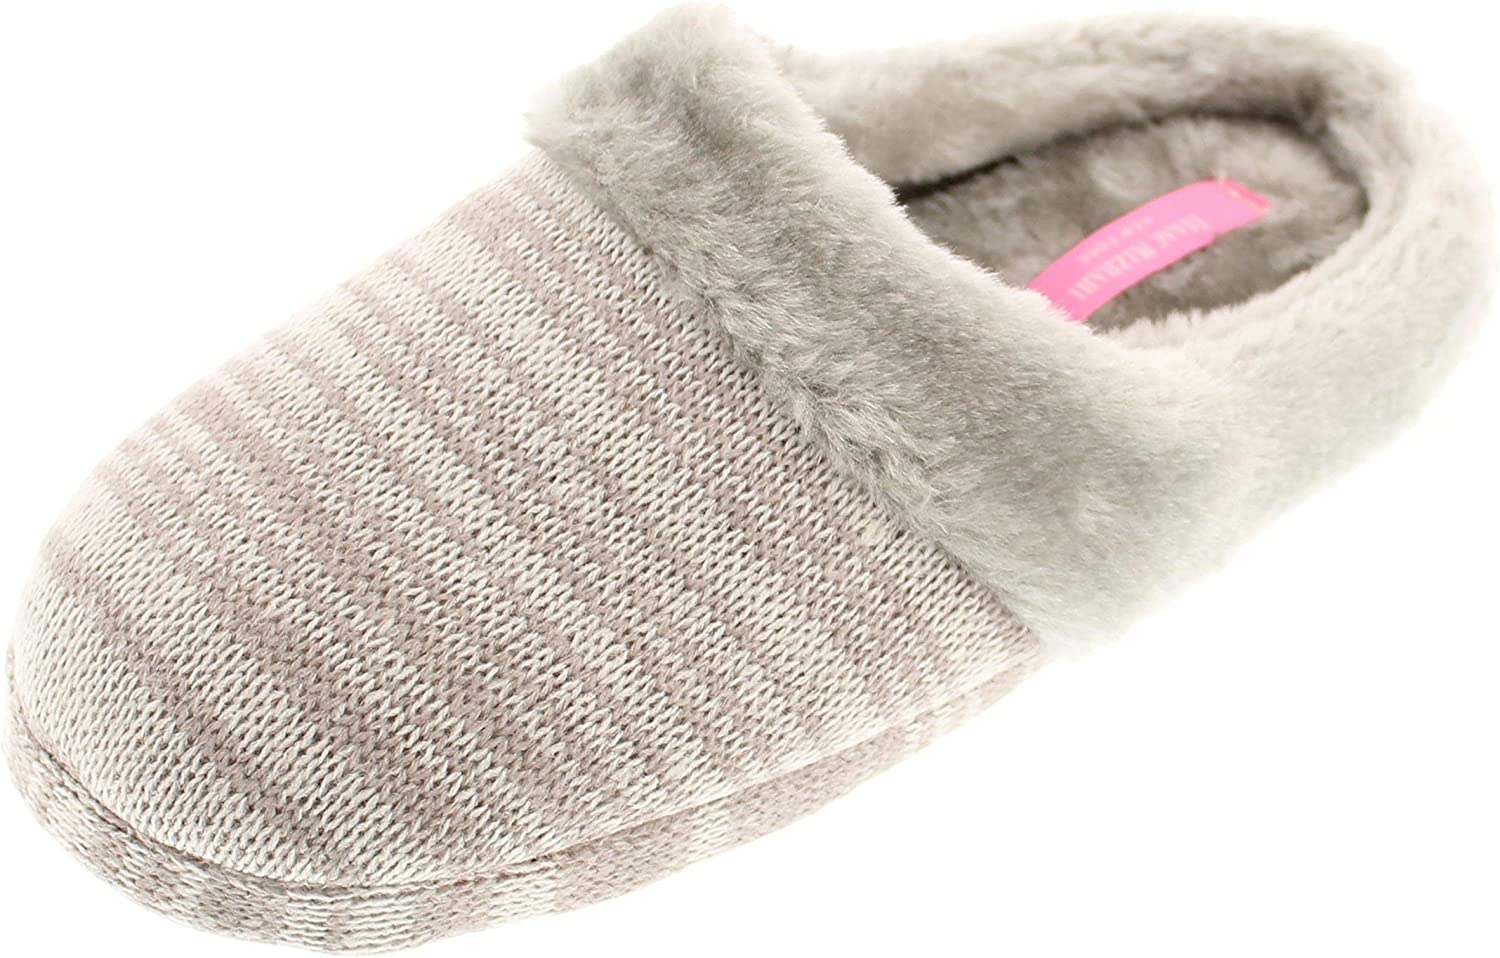 Isaac Mizrahi Women's Camden Marled Heather Knit Memory Foam Clog Slipper with Faux Fur Lining